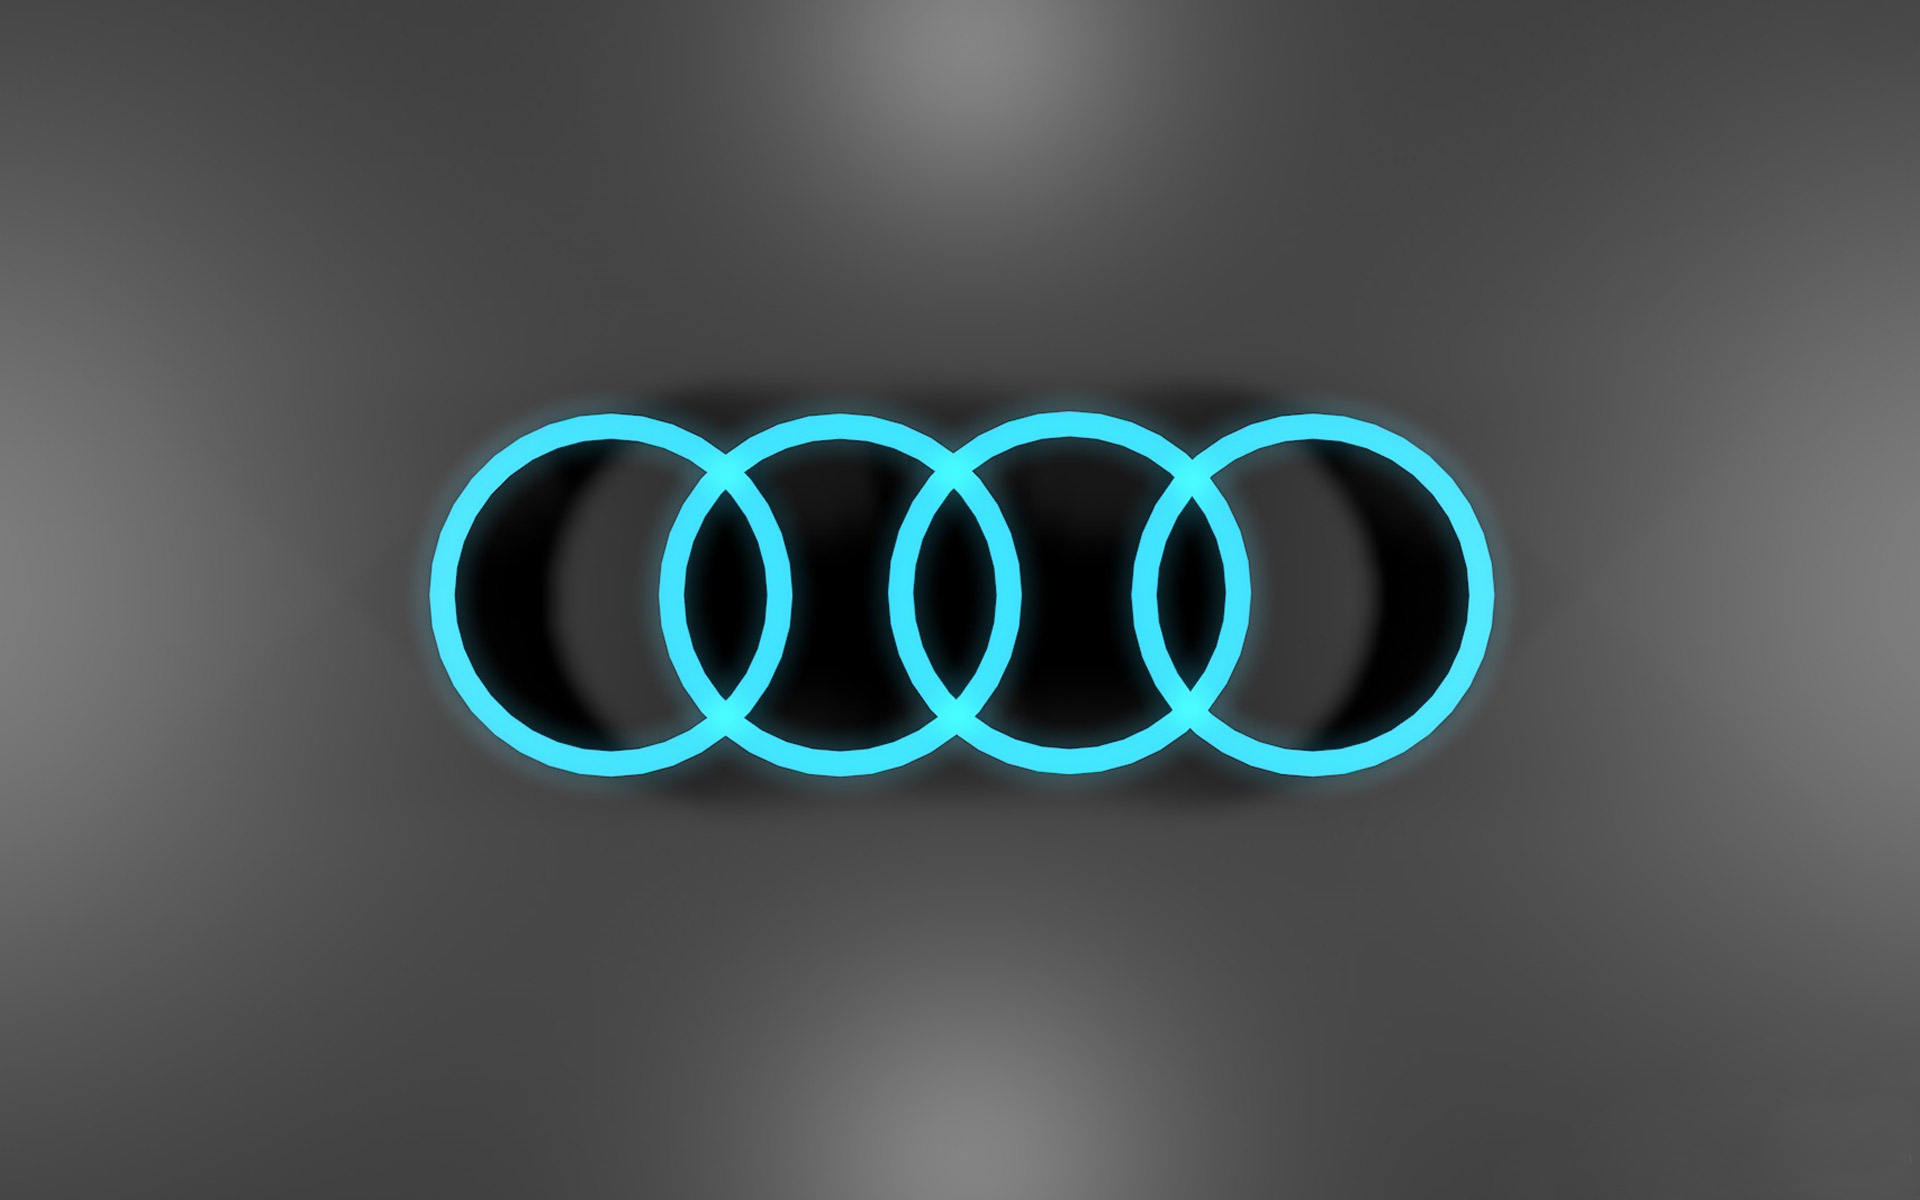 logos audi company logo hd hd wallpapers desktop wallpapers 3d